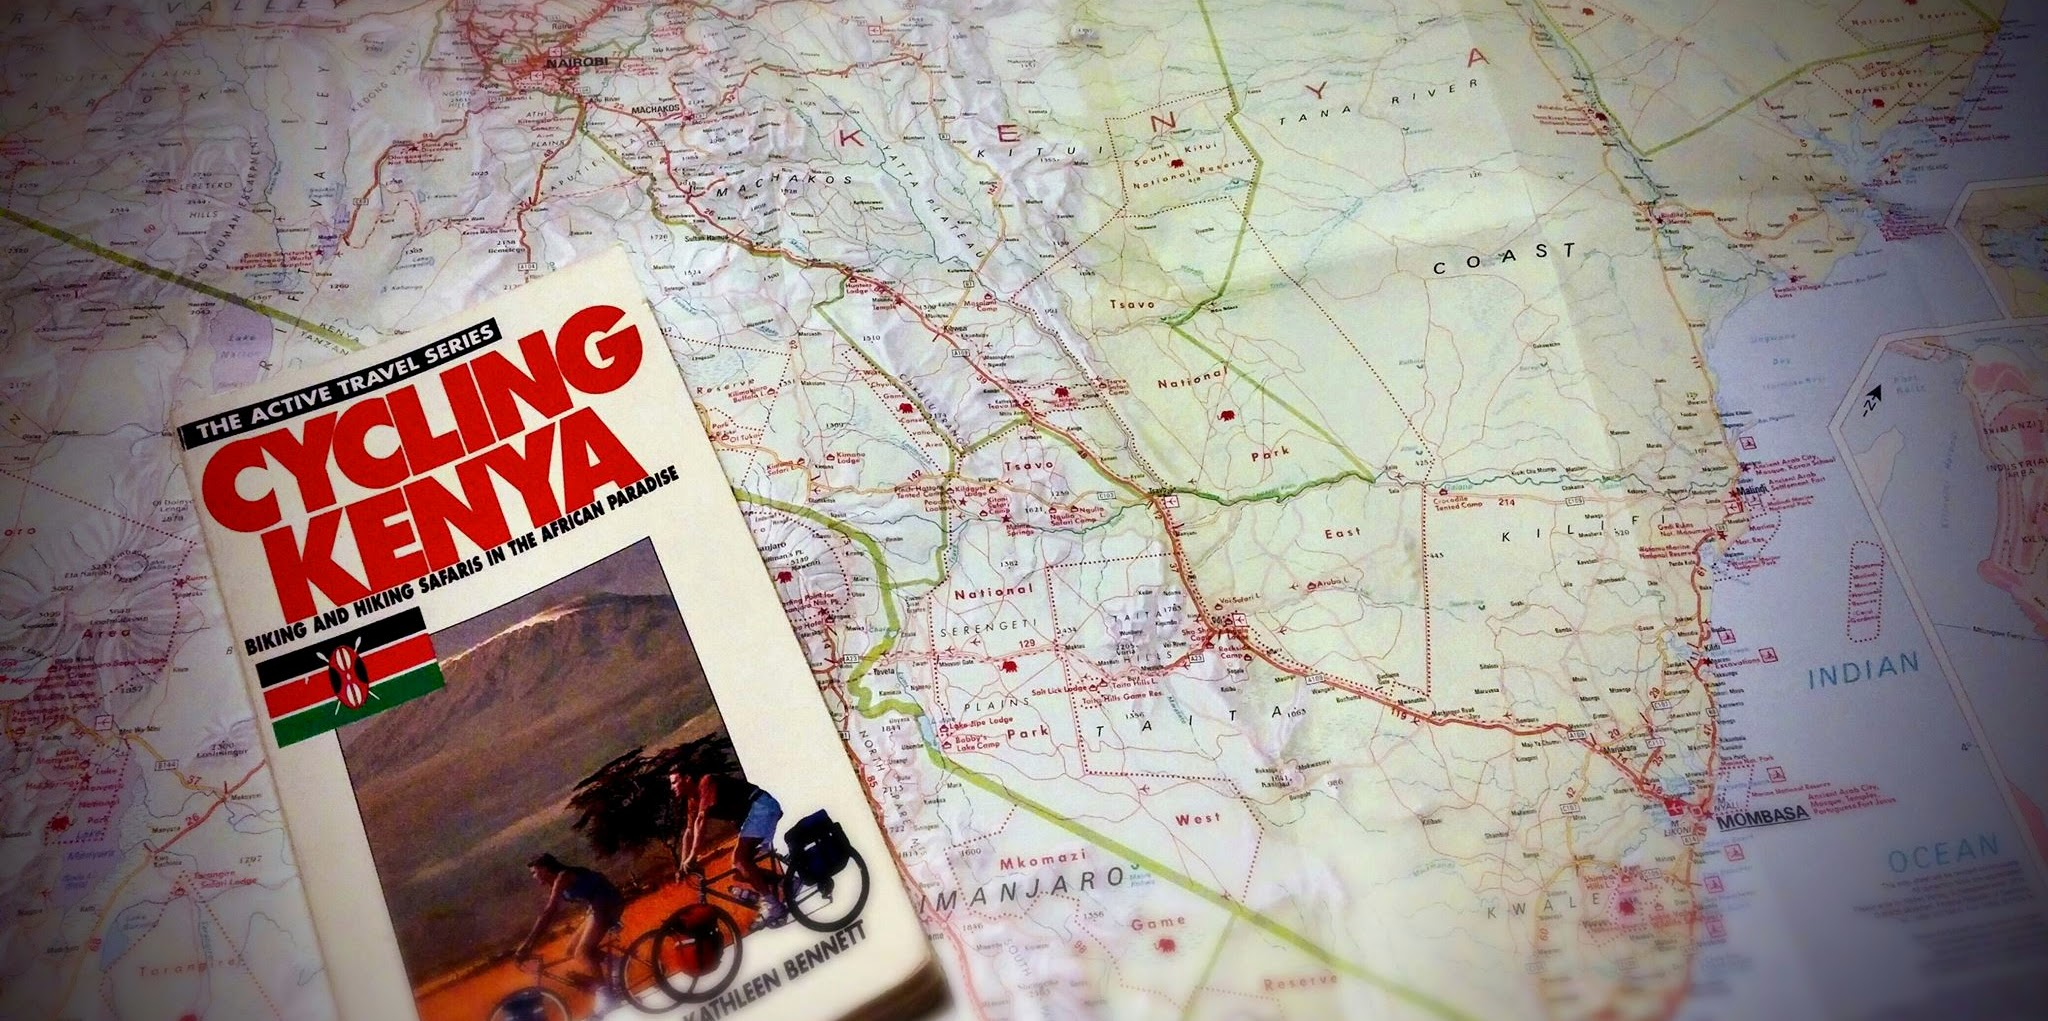 Cycling Kenya book and map of Kenya